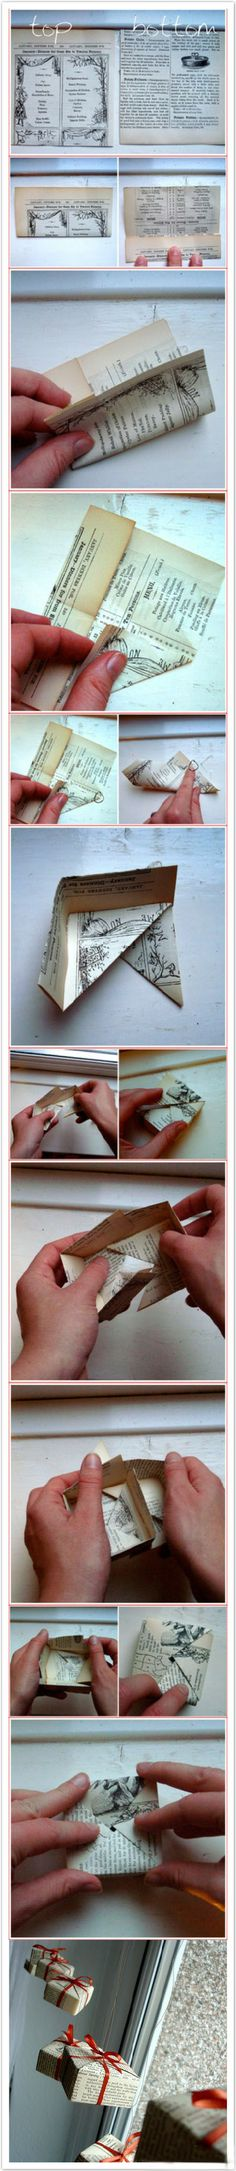 Step by step guide to creating Christmas present ornaments using recycled paper and ribbon. A little origami, a little folding for a cute result.